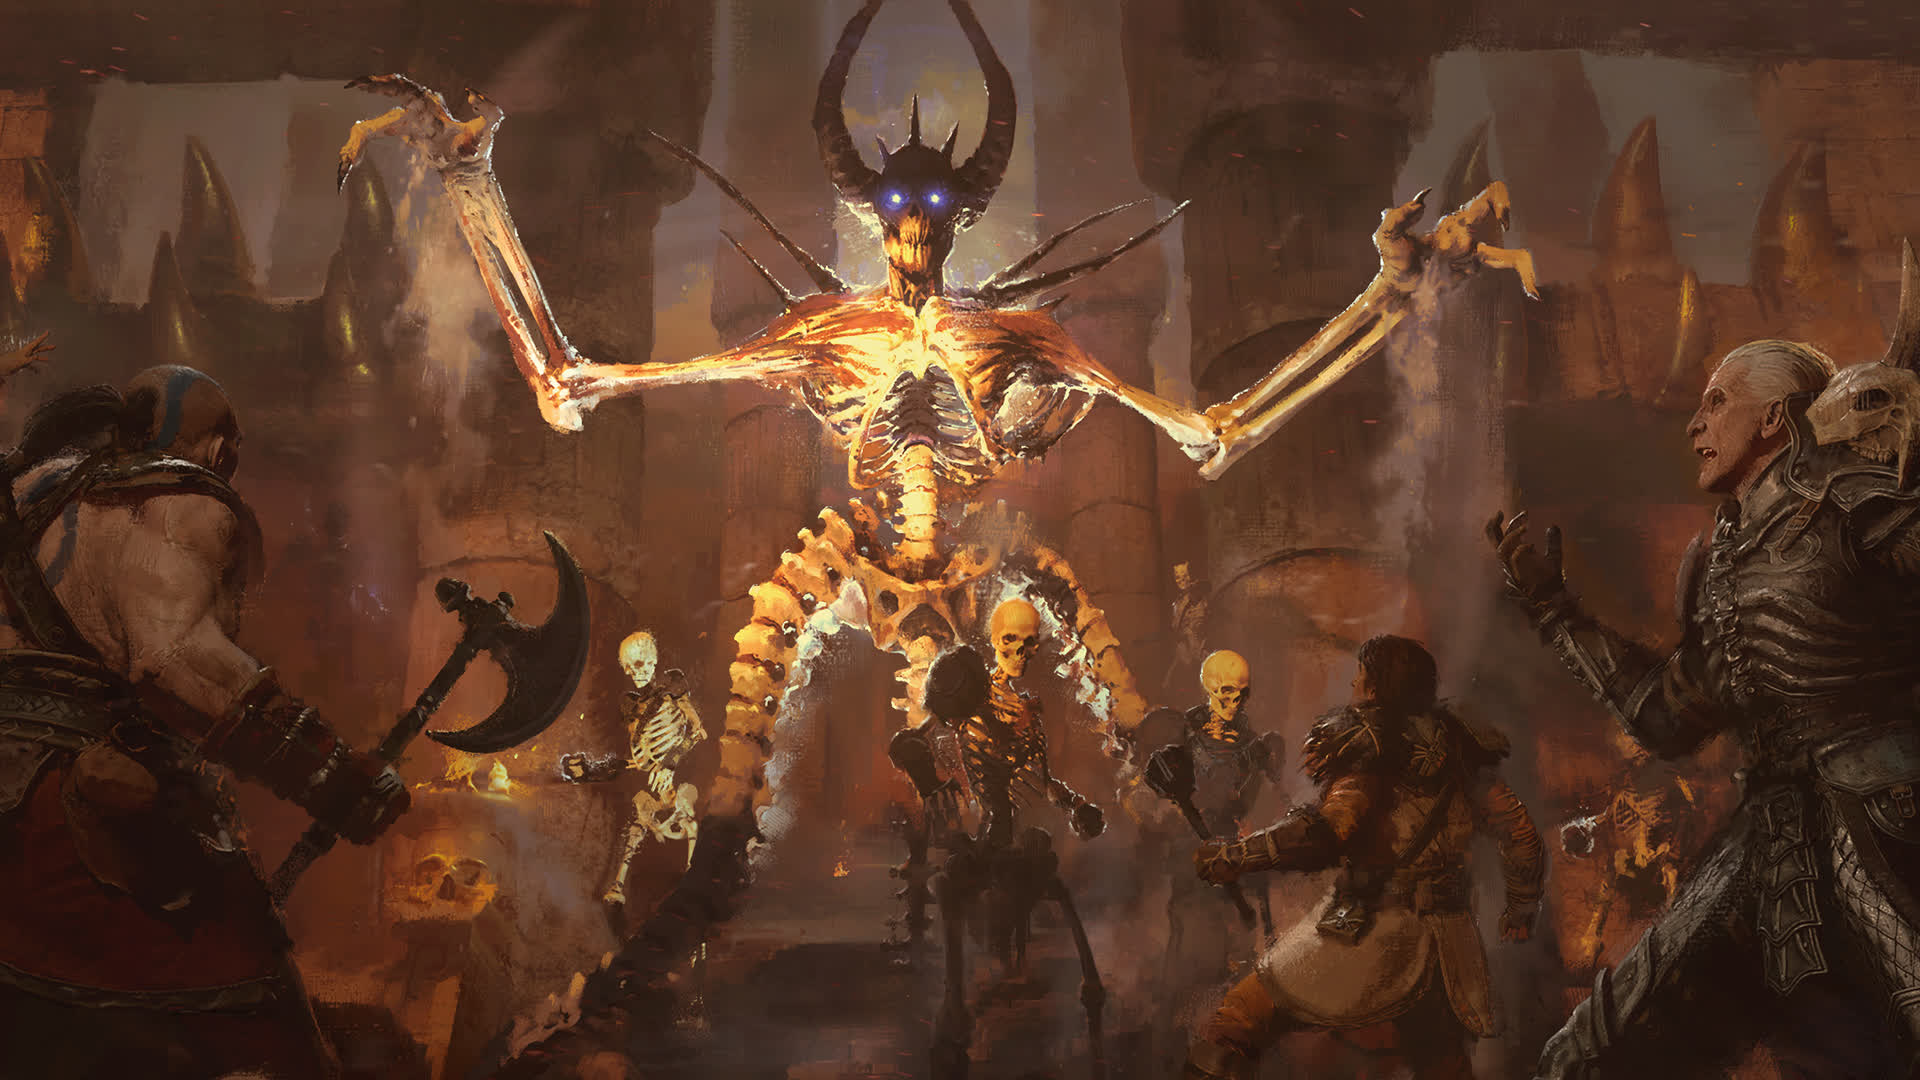 Blizzard removed ultrawide monitor support from Diablo 2 because it broke the game